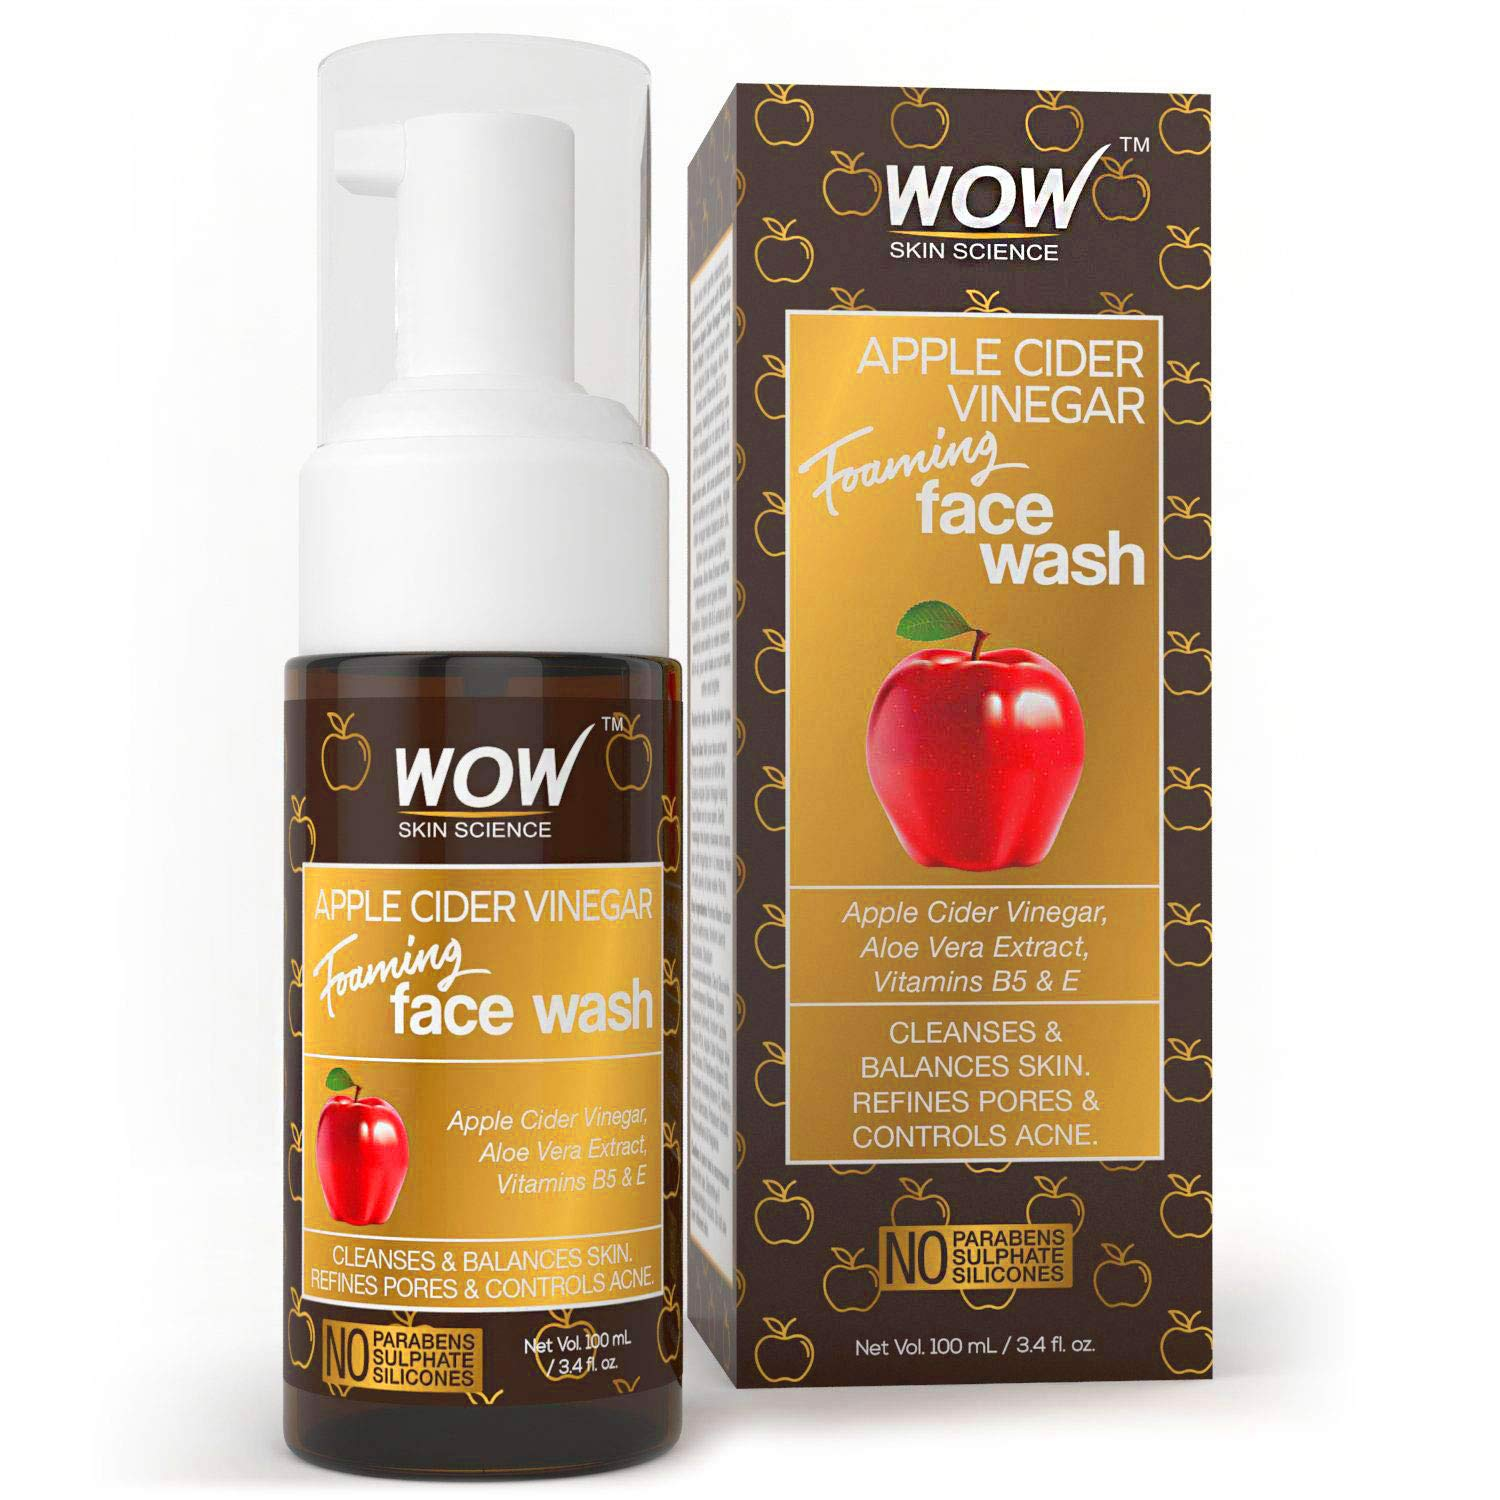 WOW Apple Cider Vinegar Foaming Face Wash Cleanser - Normal, Dry & Oily Skin - Heal, Hydrate For Soft, Clear Skin - Remove Dirt, Oil & Makeup, Reduce Acne Breakouts - Men & Women - All Ages - 100 mL by BUYWOW